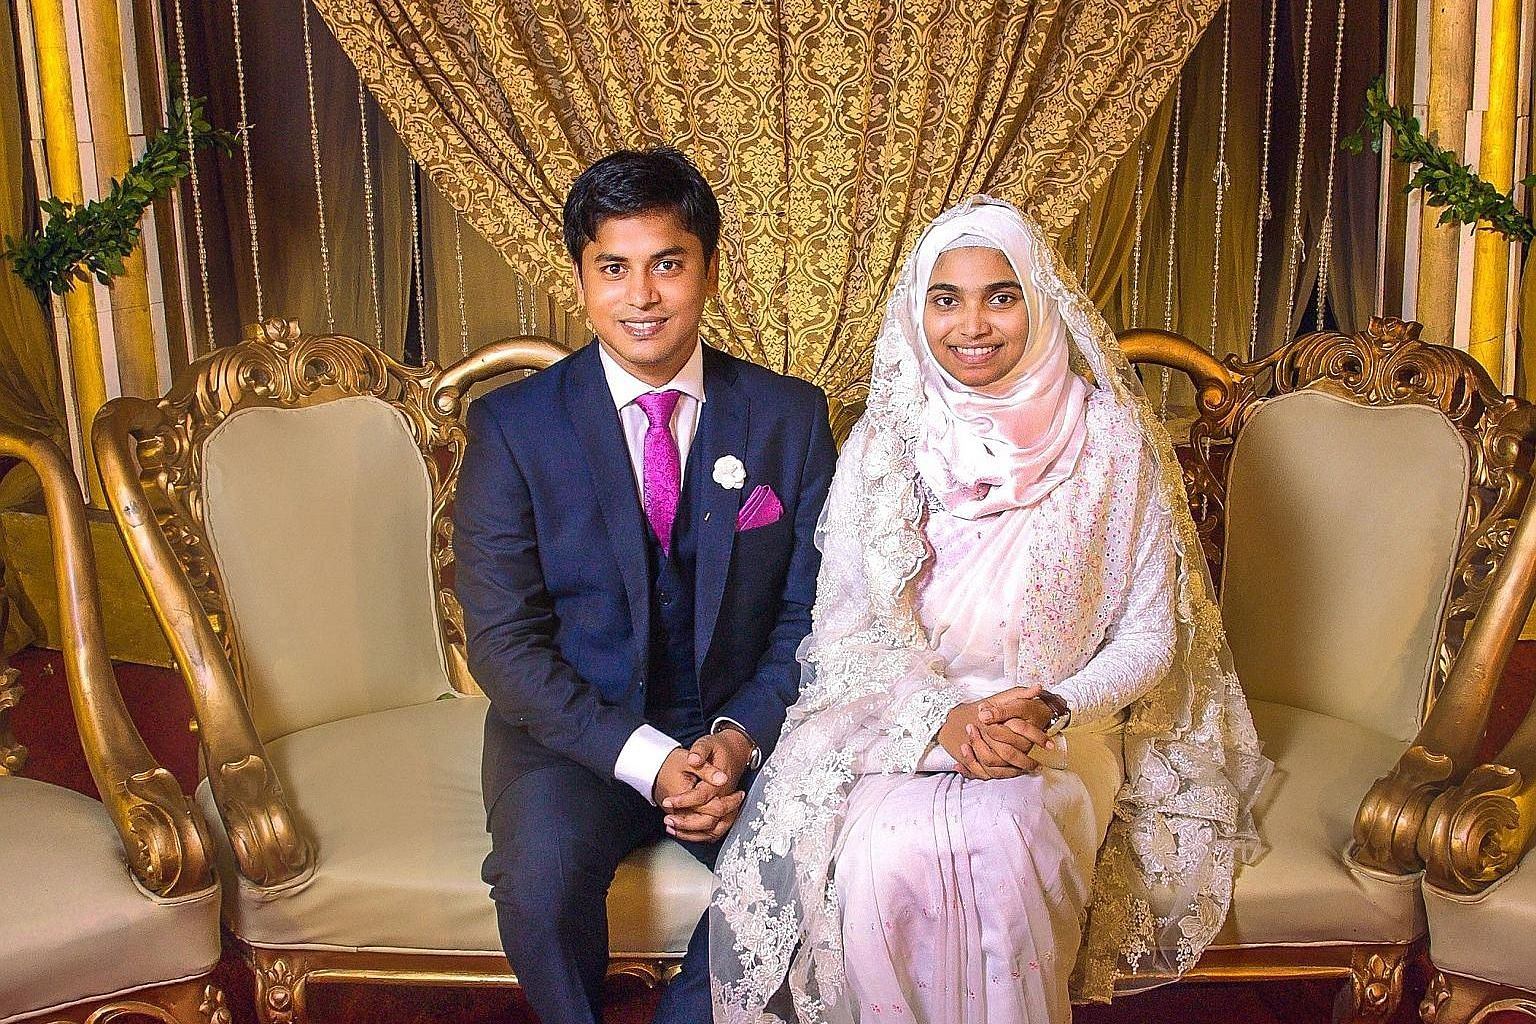 Ms Tasnim Jara and her husband at her wedding in Dhaka. She wore her grandmother's cotton sari with no make-up or jewellery.